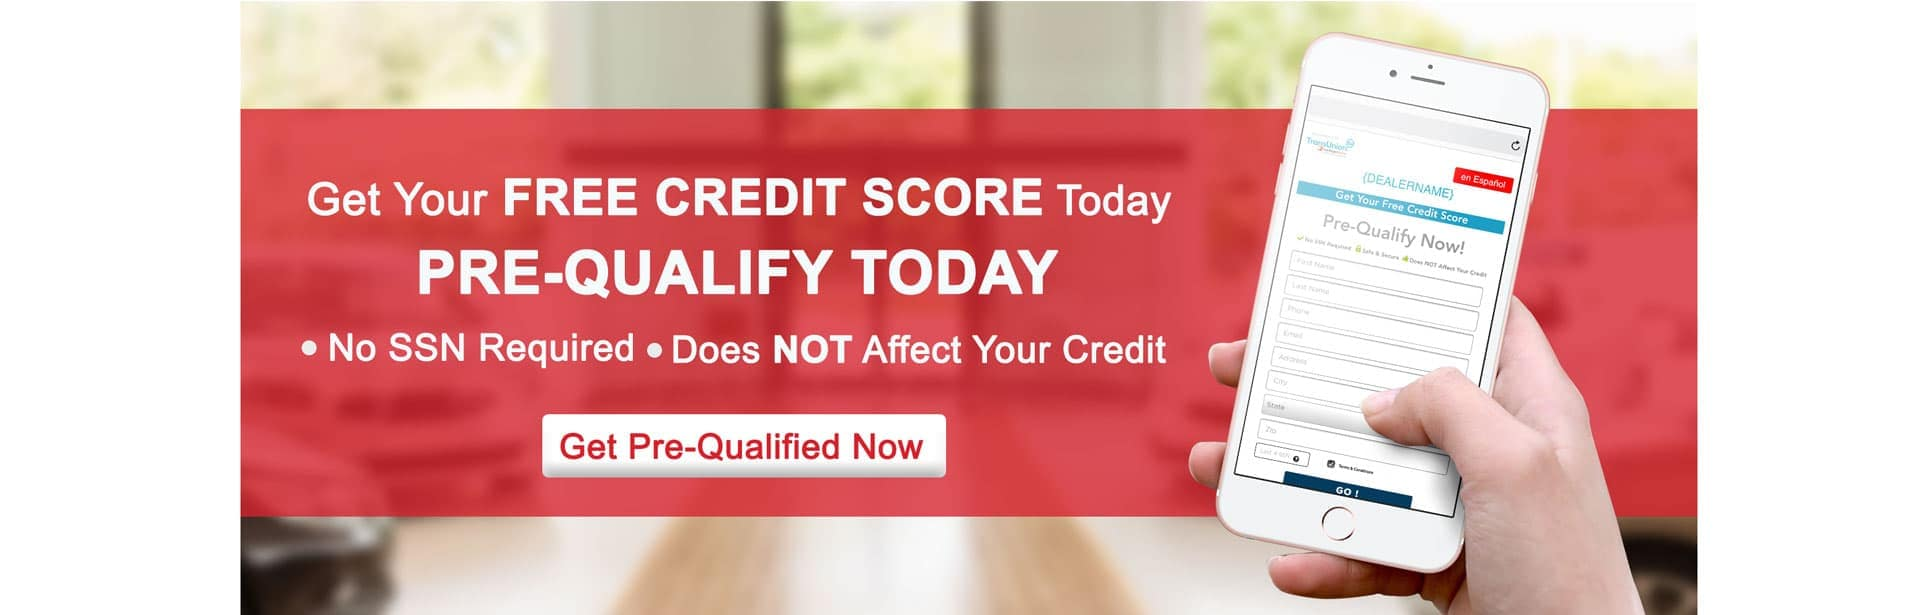 Get Your Free Credit Score Today Banner. No SSN Required. Does Not Effect Your Credit.